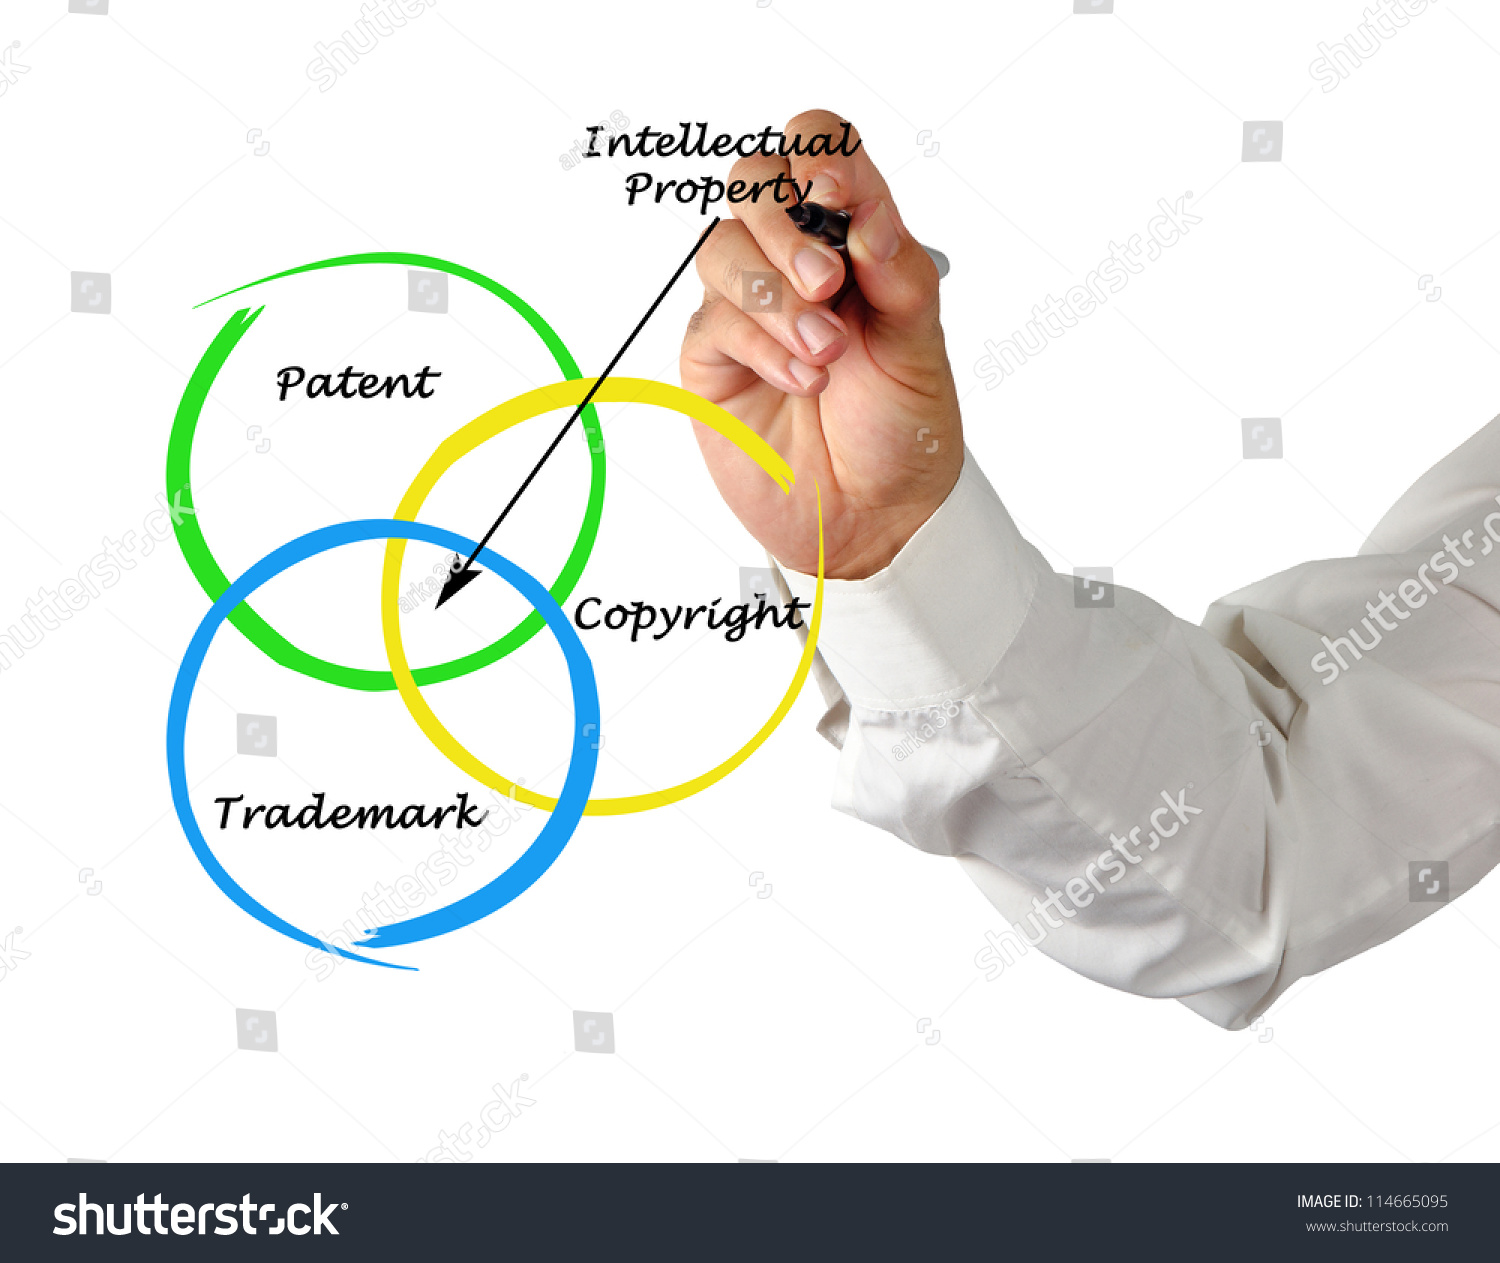 Intellectual Property Protection: Protection Intellectual Property Stock Photo 114665095